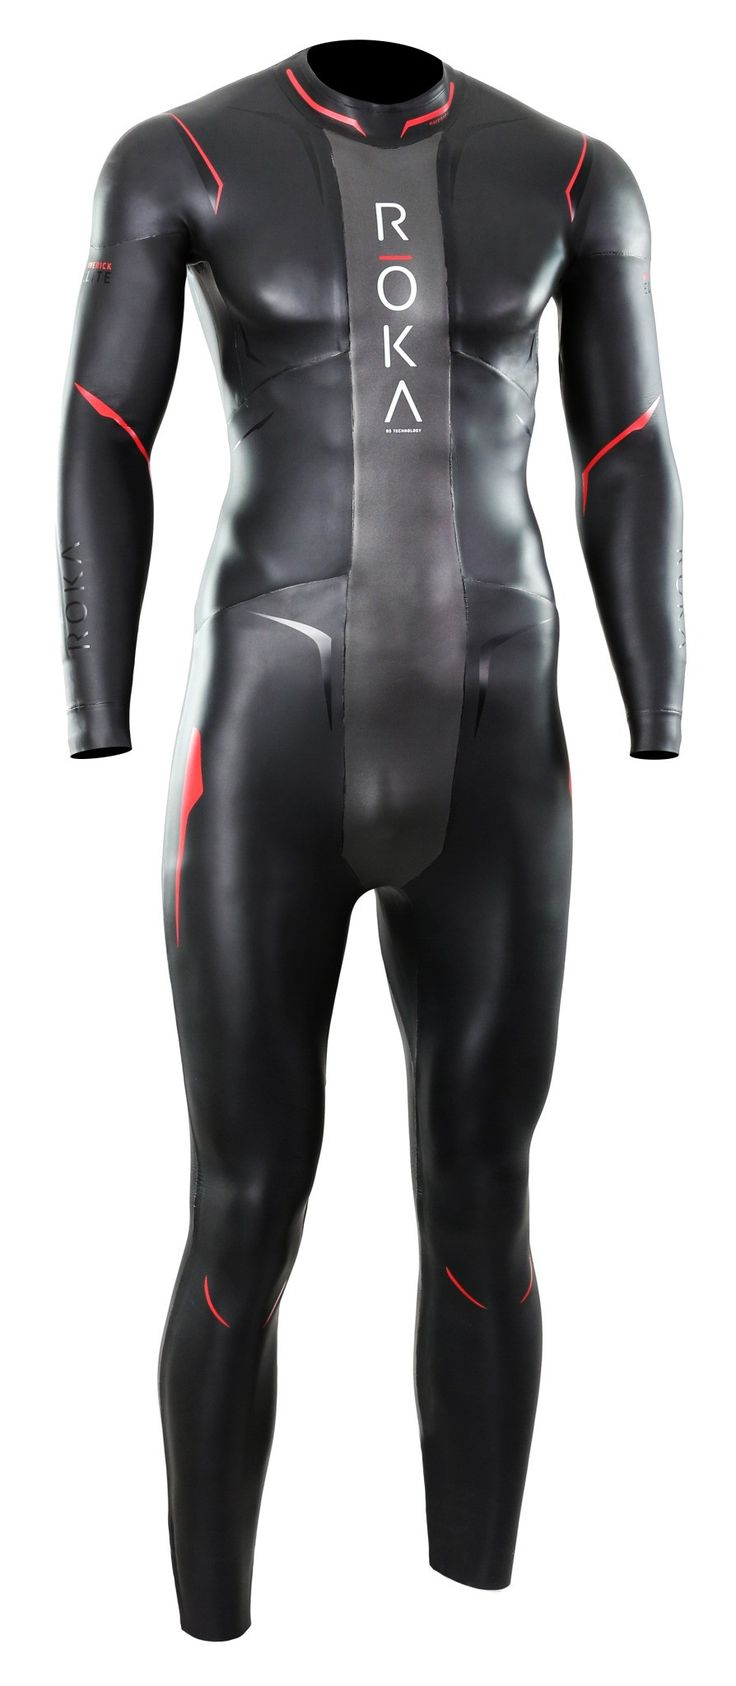 IRONMAN Store | Triathlon Gear and Triathlon Clothing IRONMAN ROKA Maverick Elite Full Wetsuit - Men's